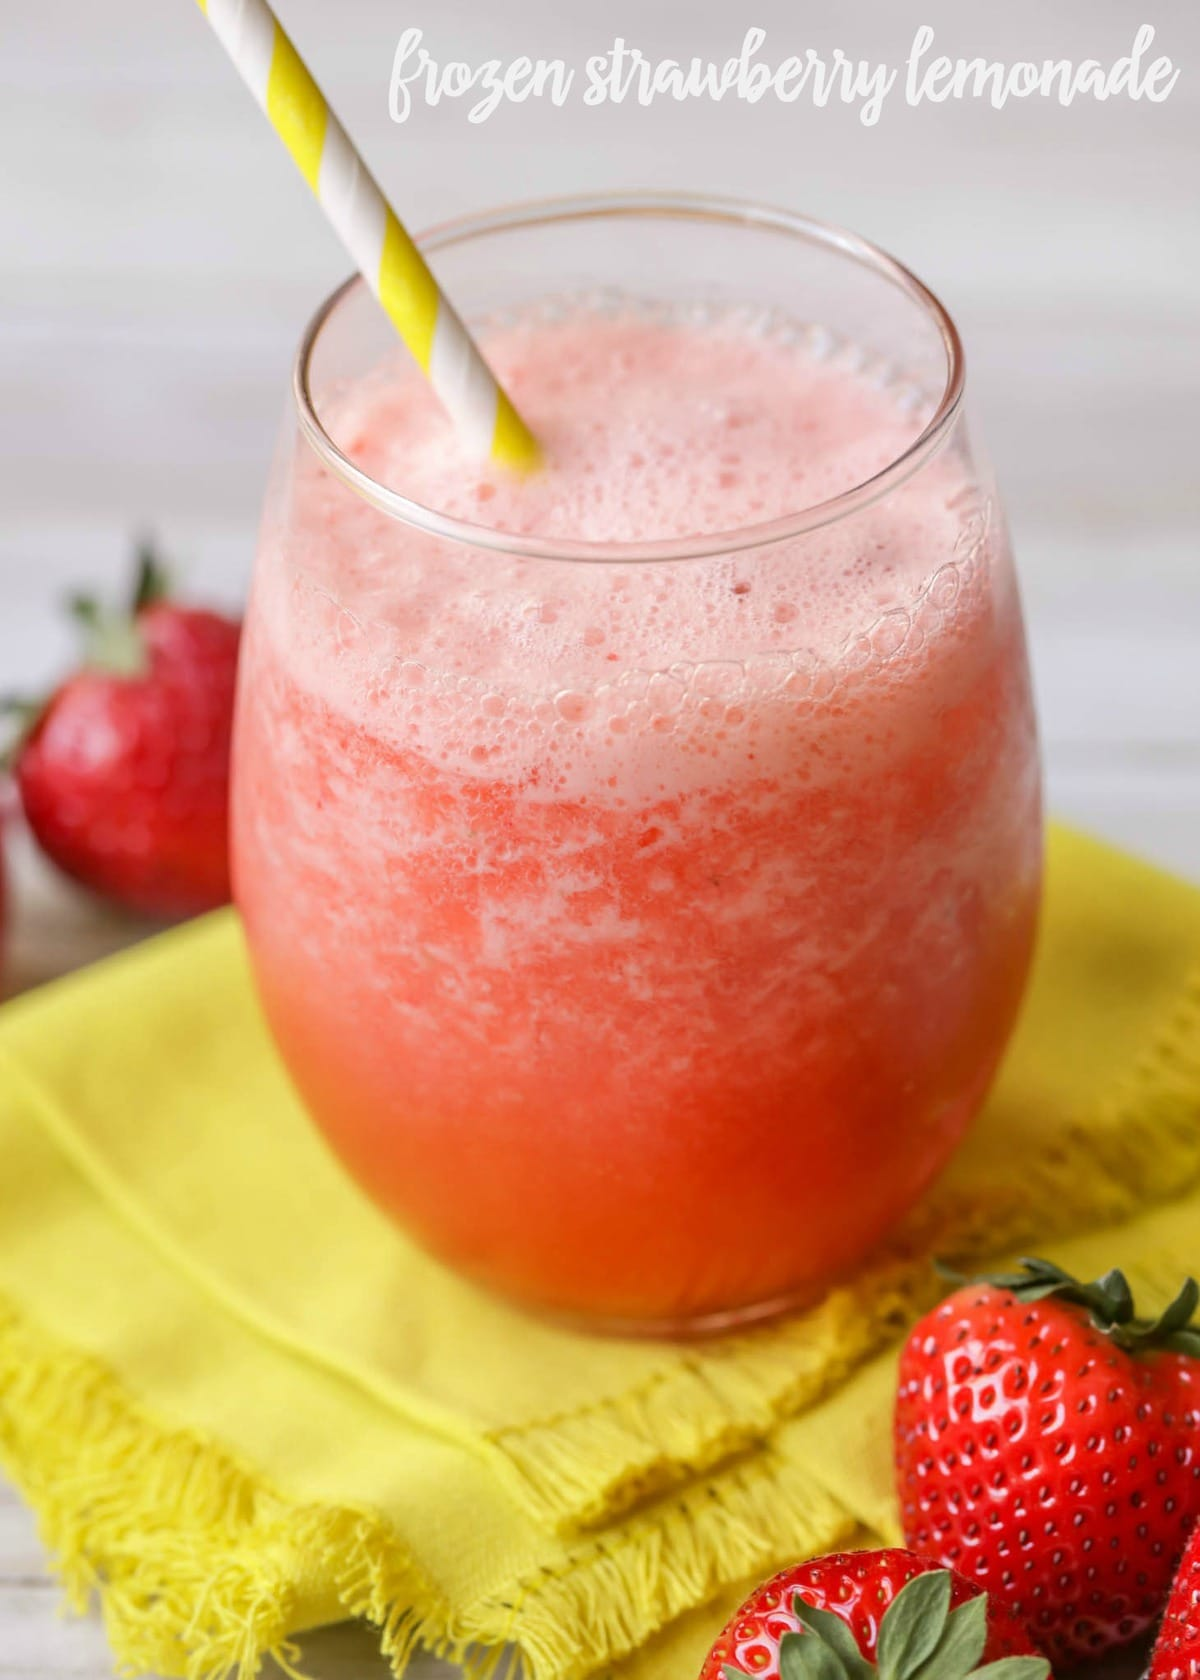 Frozen Strawberry Lemonade - this takes minutes to make and is filled with lemonade, strawberries, ice and pineapple juice.